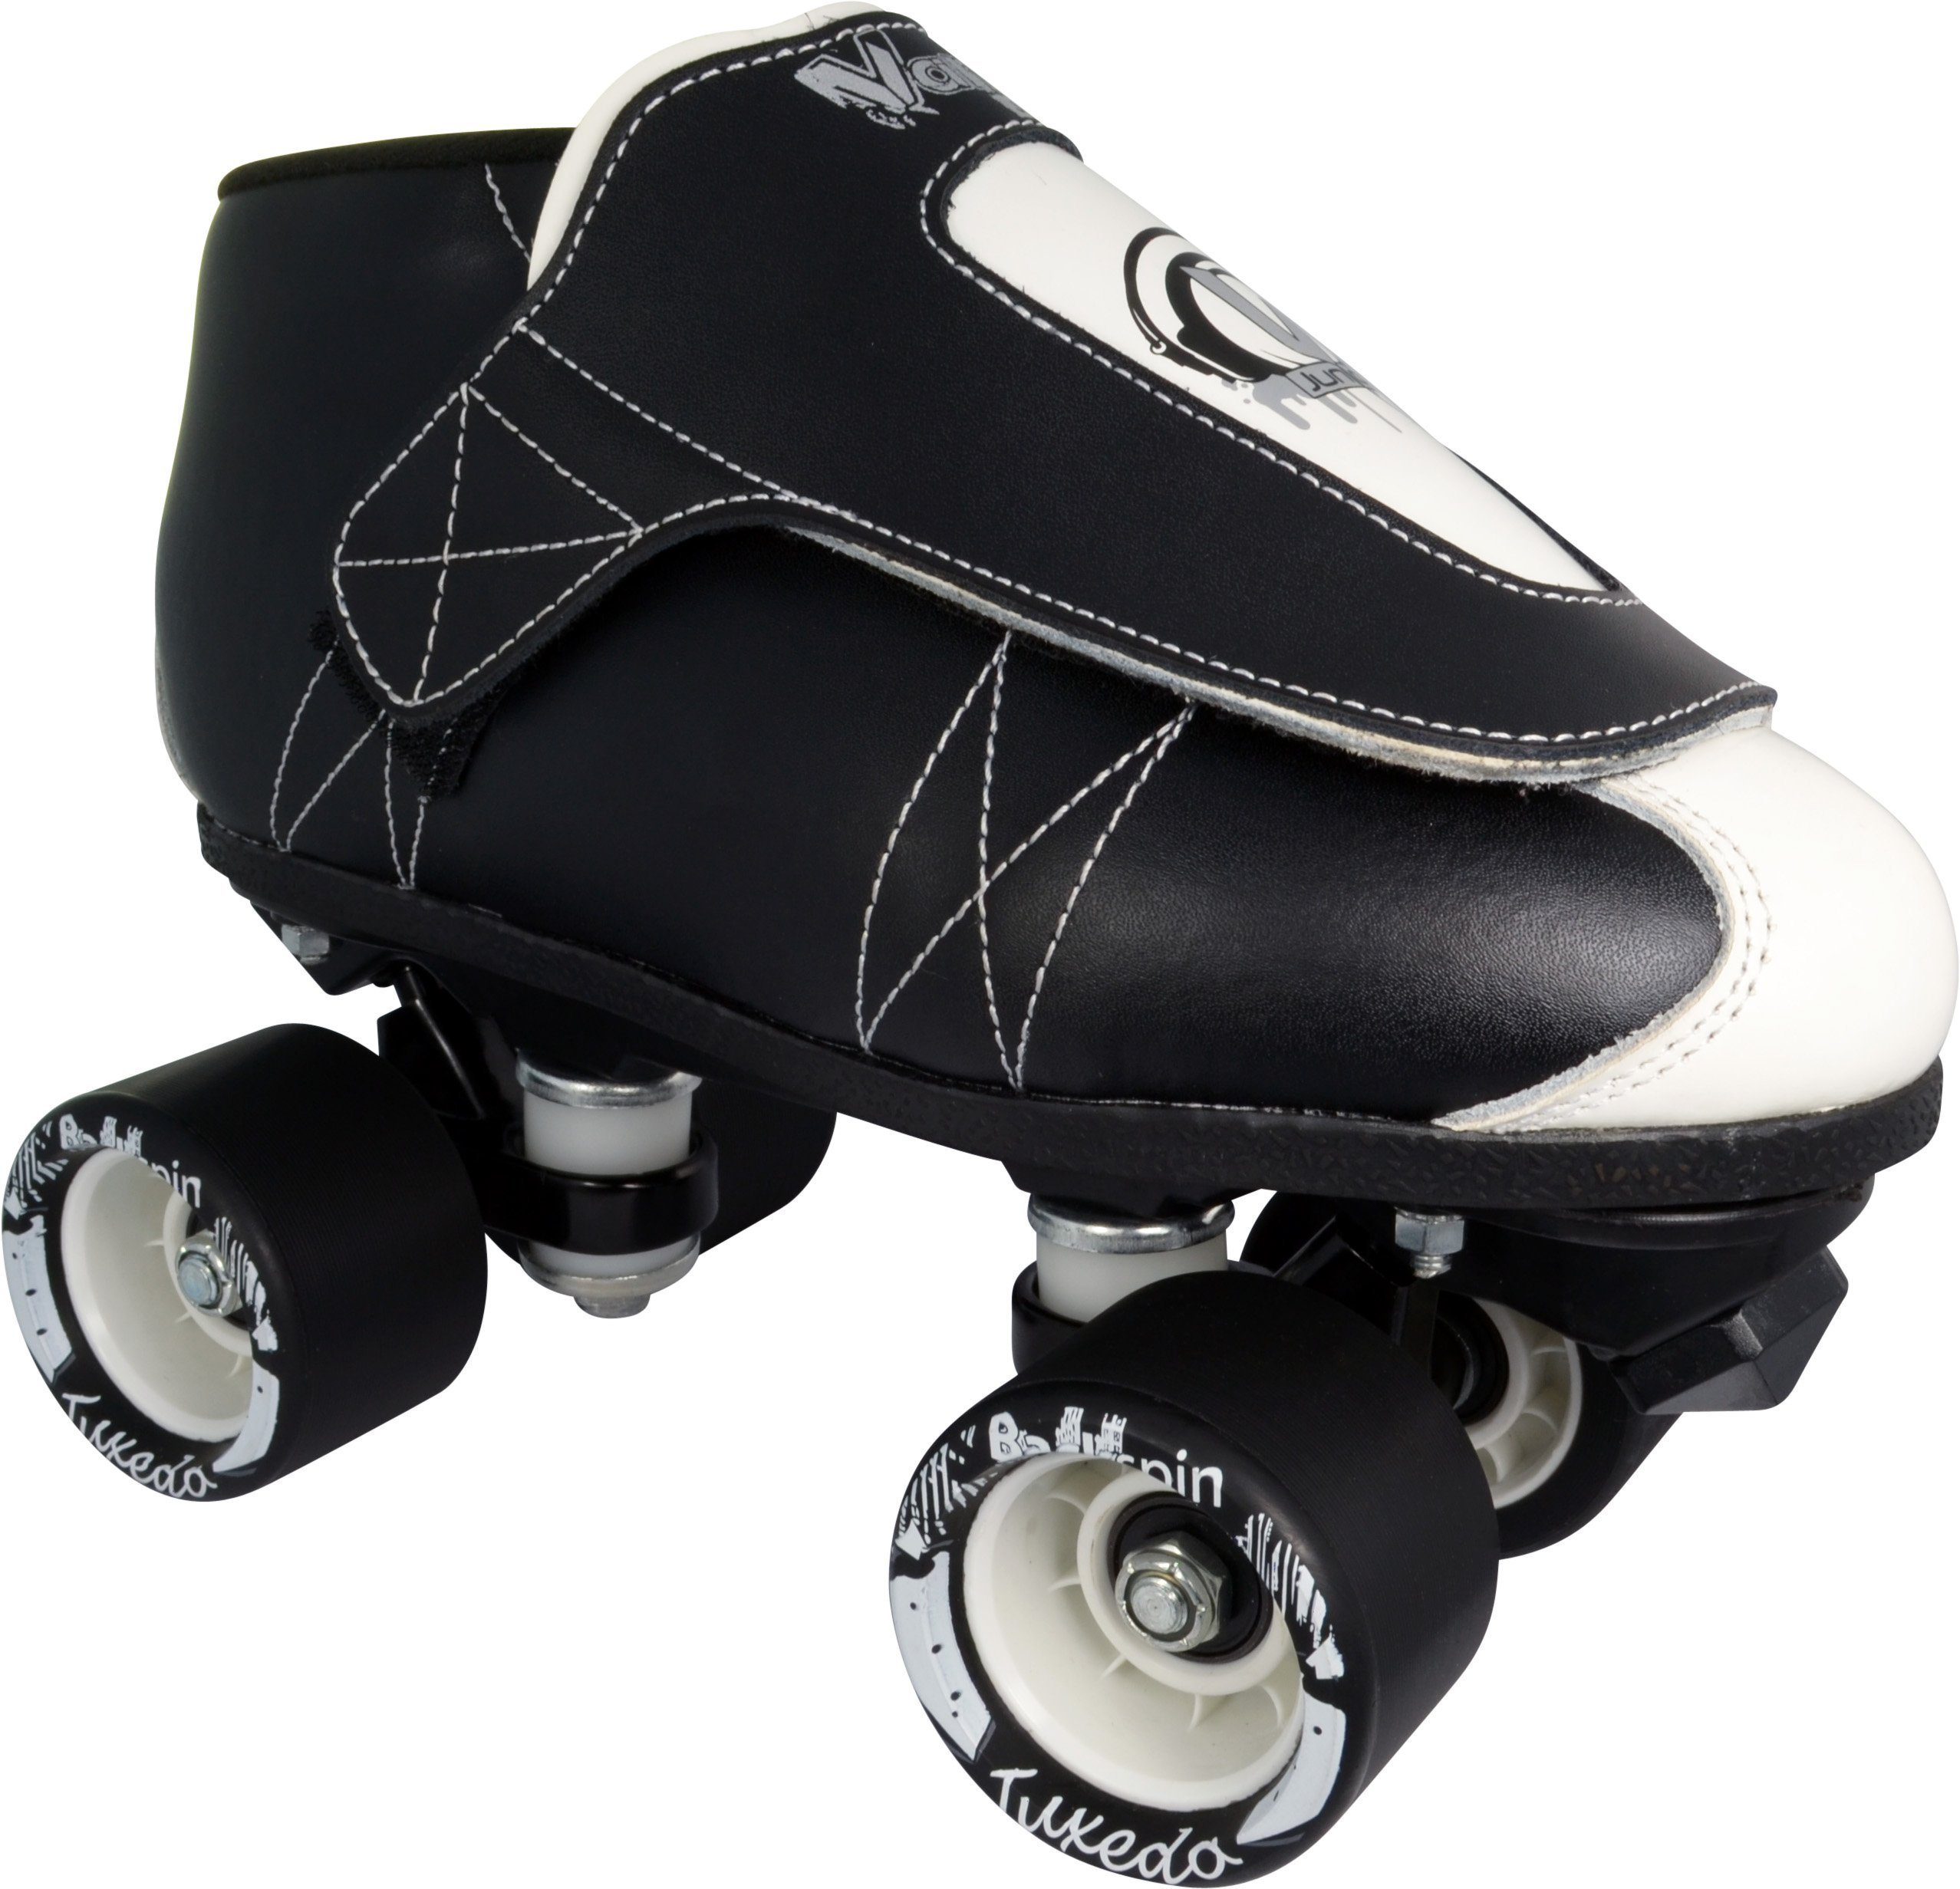 Vanilla Jr. Tuxedo Quad Speed Roller Jam Skates (Mens 12) by VNLA